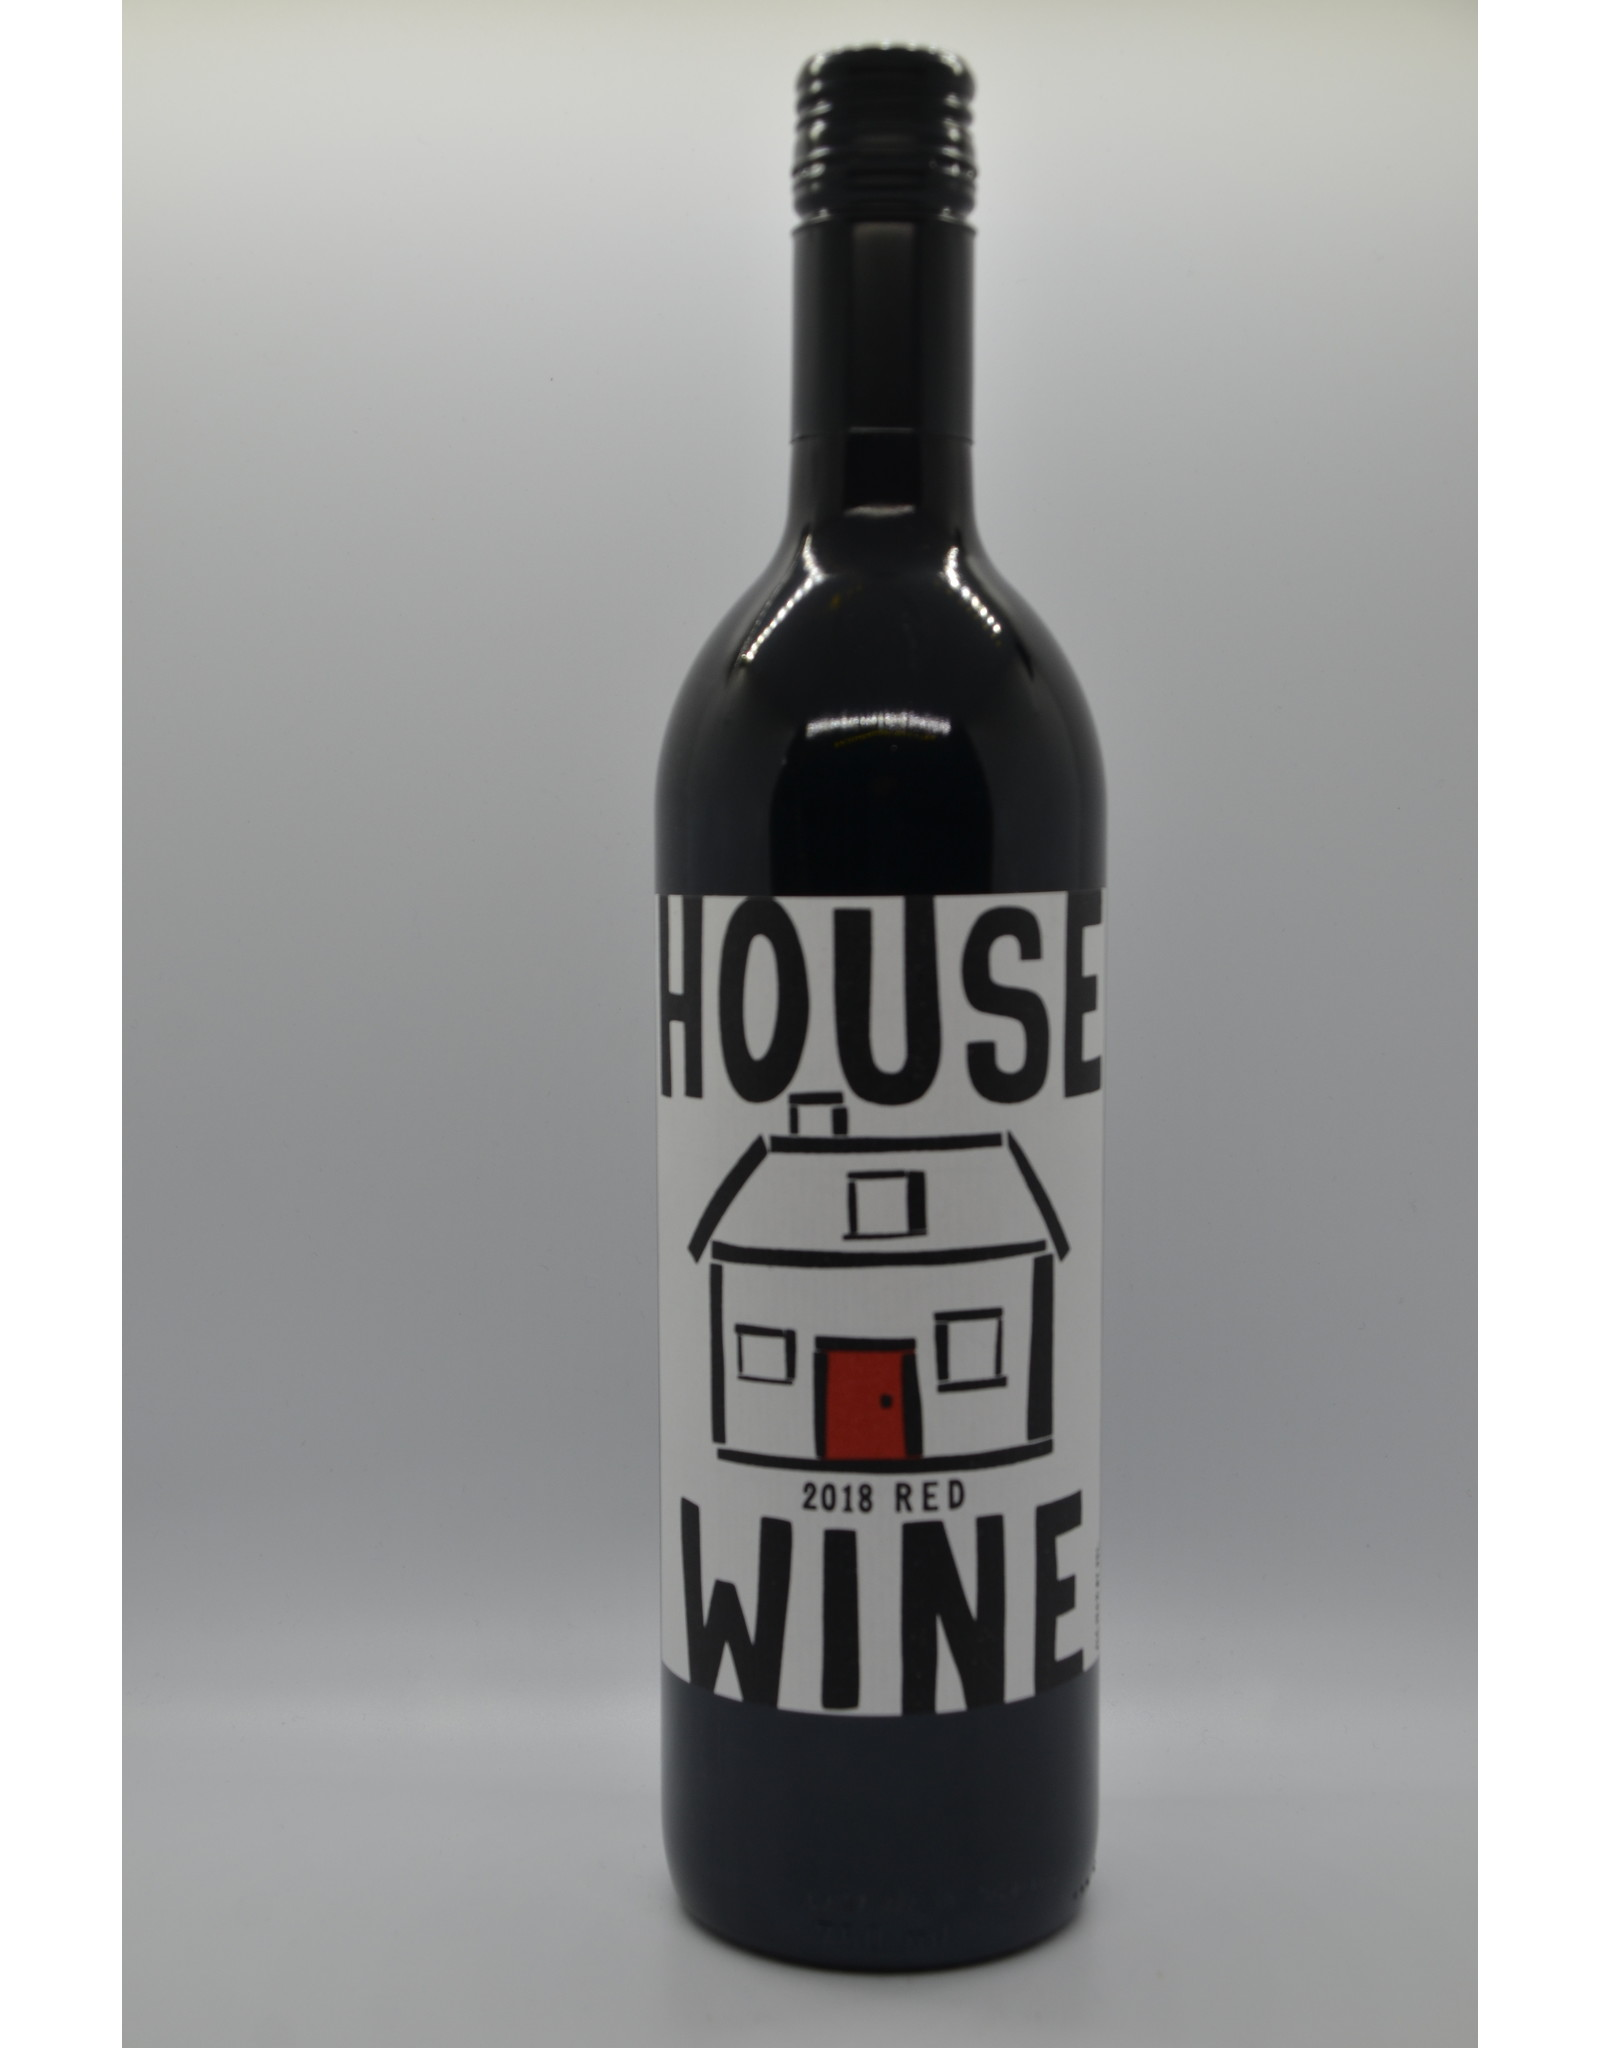 USA House Red Wine